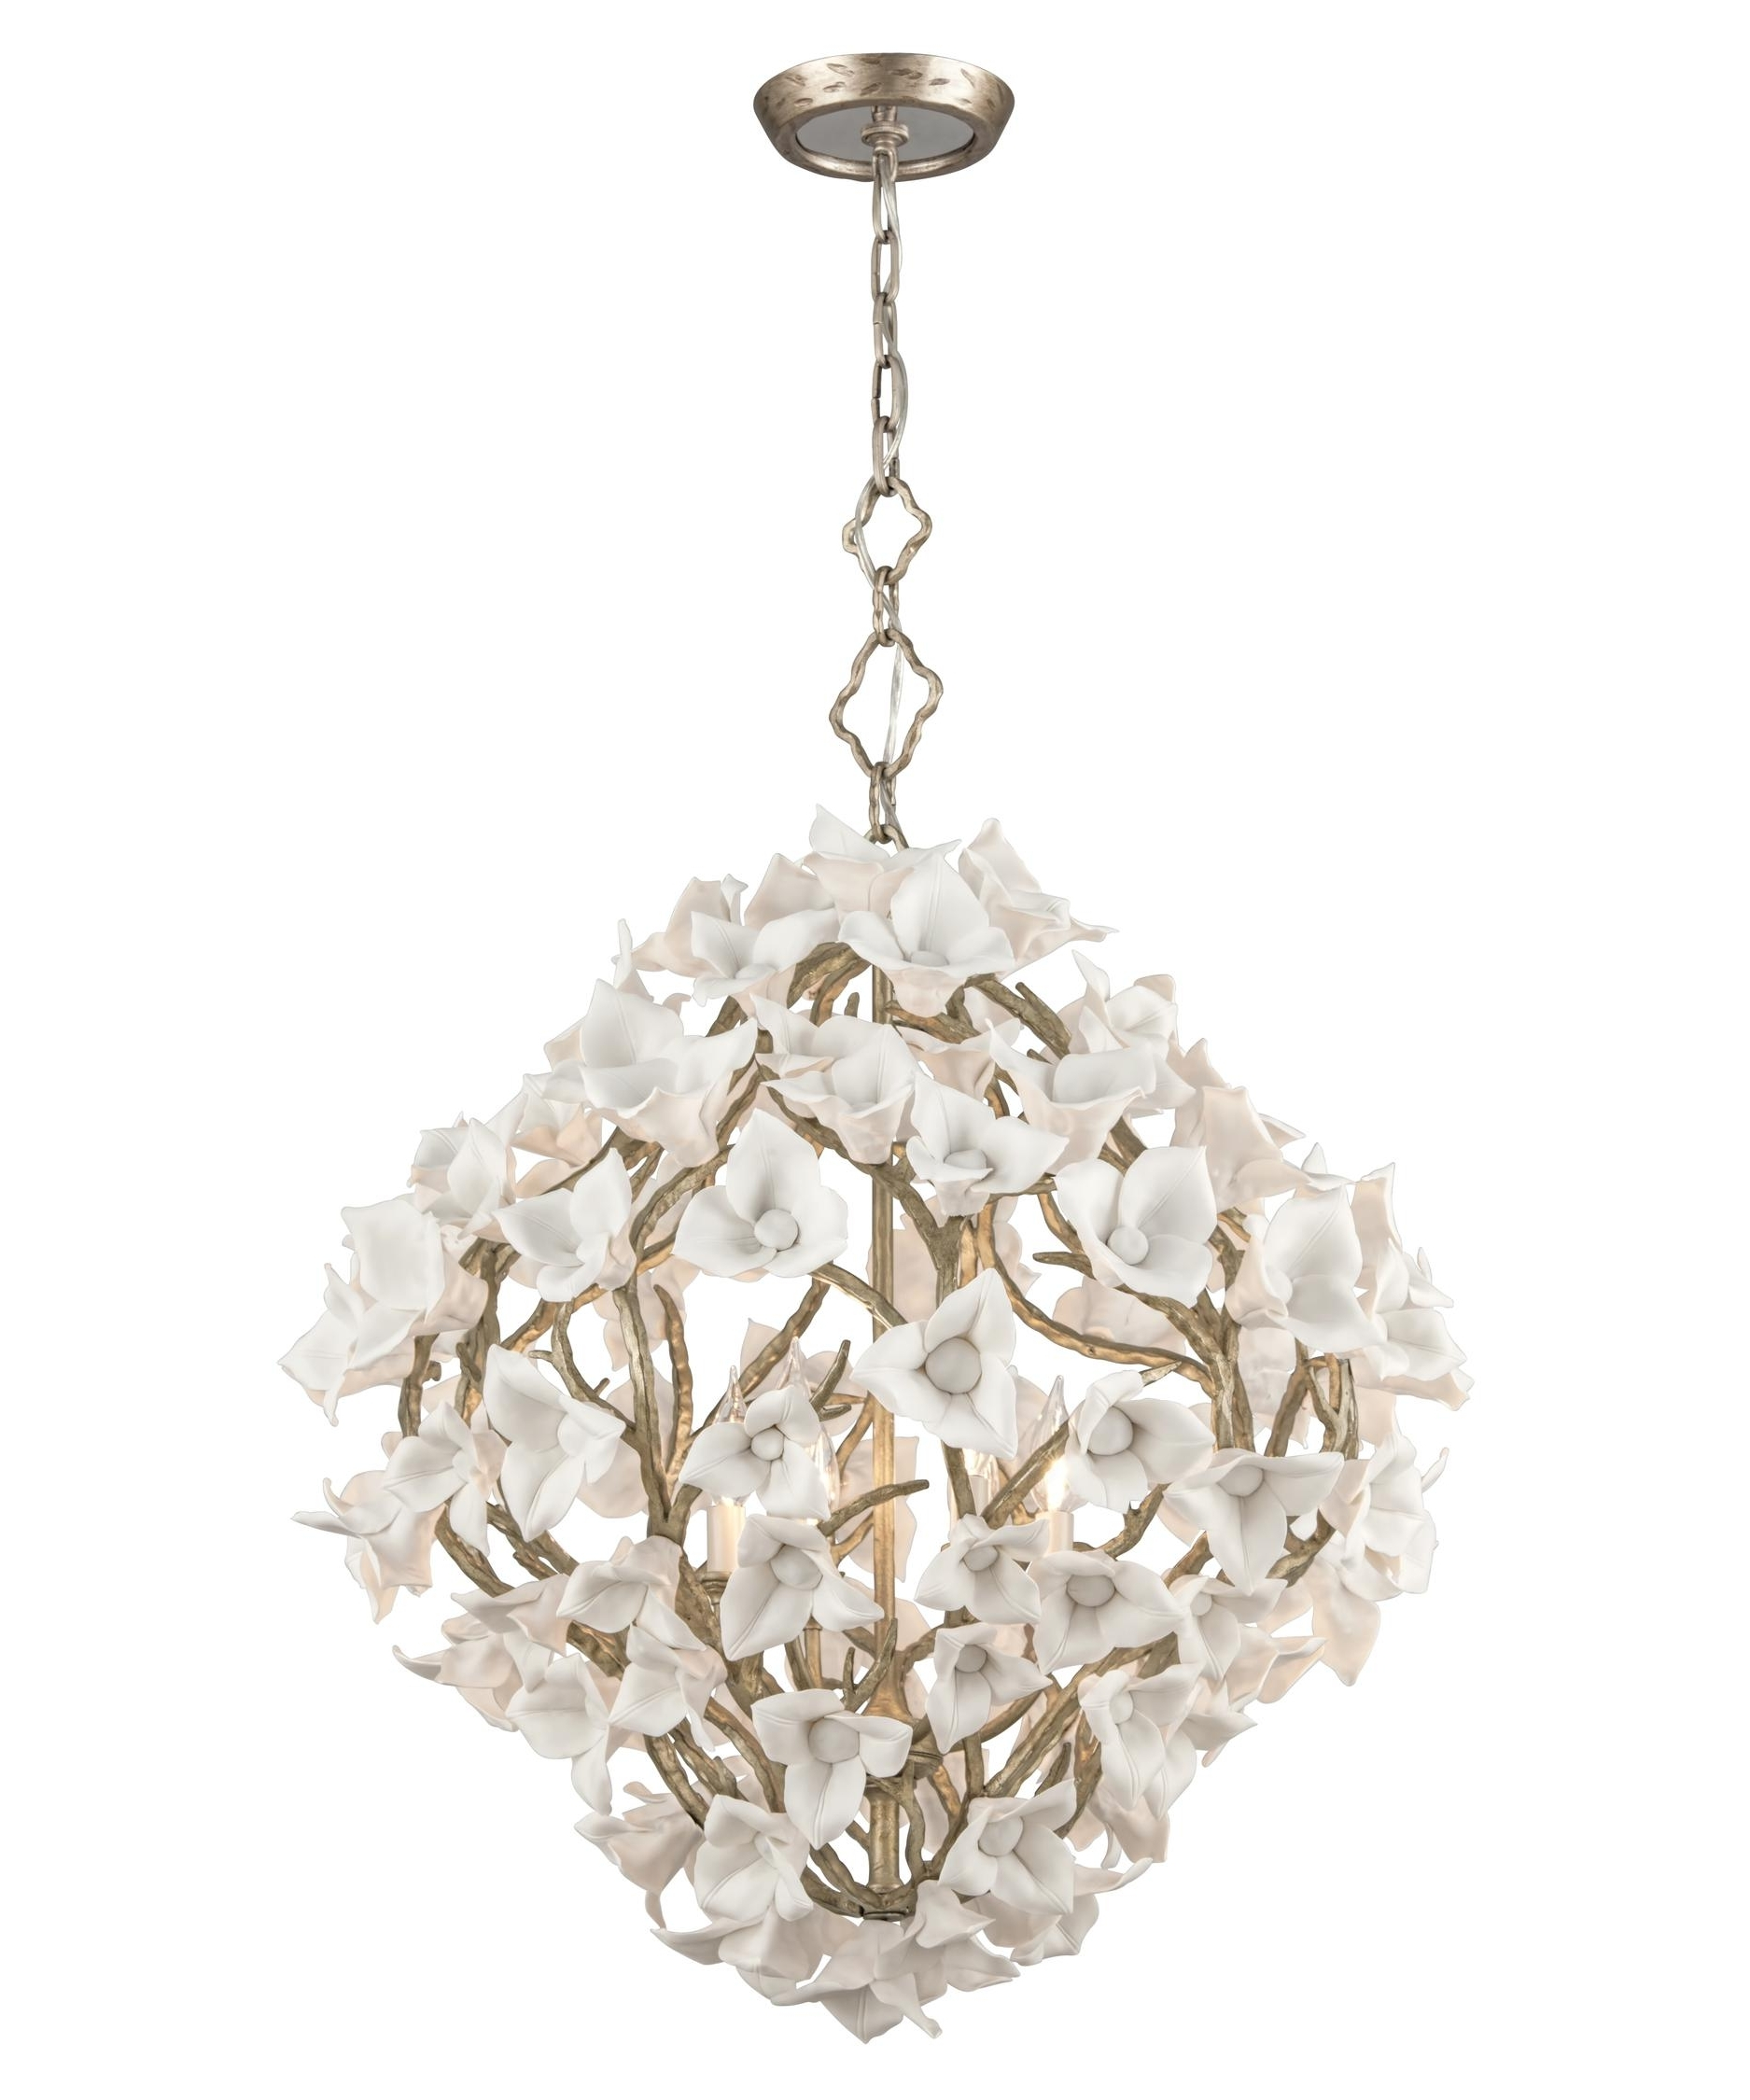 Corbett Lighting 211 46 Lily 26 Inch Wide 6 Light Large Pendant Intended For Preferred Lily Chandeliers (View 5 of 20)